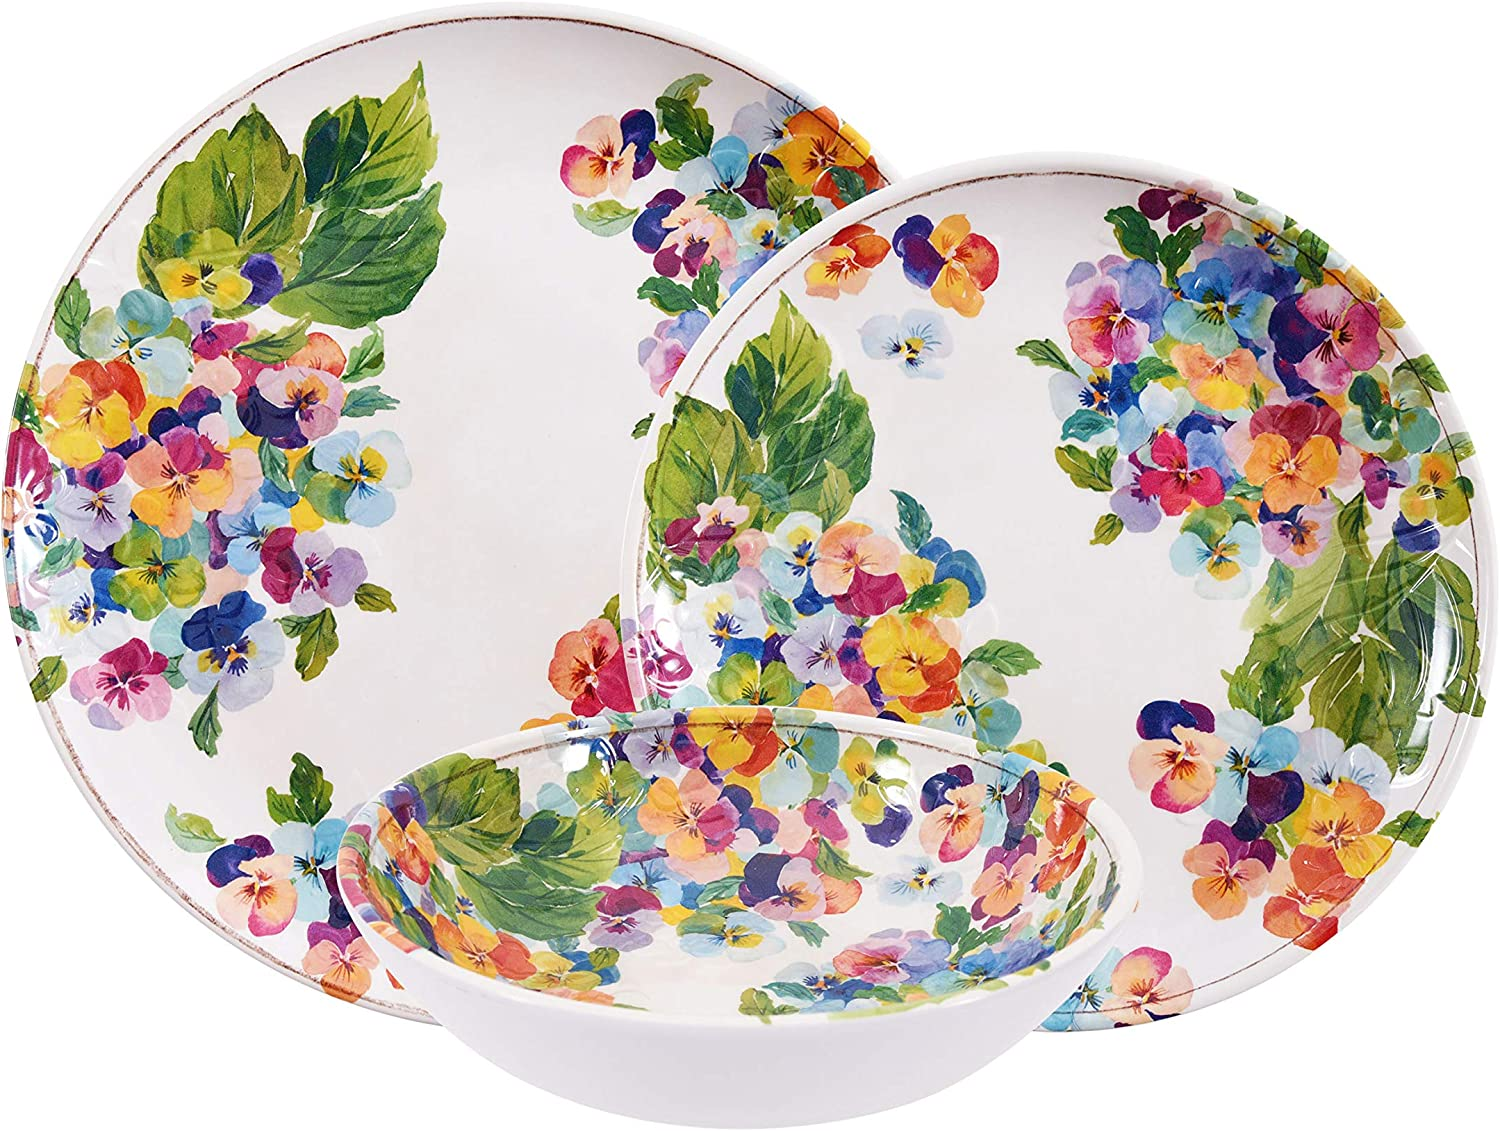 First Design Global 12 Piece Melamine Dinnerware Set, Dishes for Everyday Use, Service for 4, Pansies